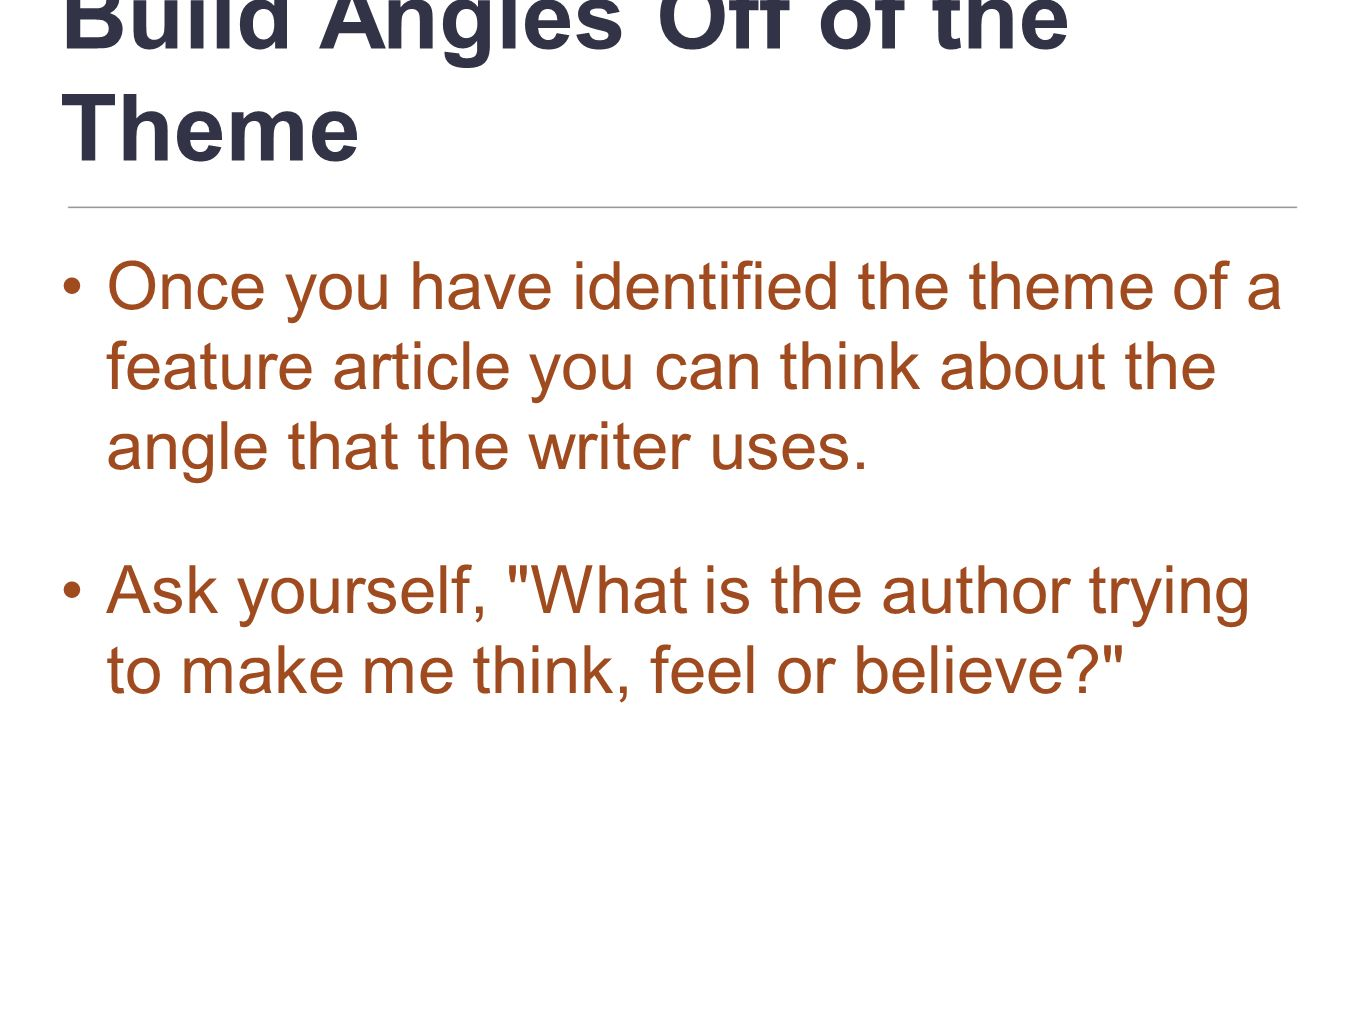 Build Angles Off of the Theme Once you have identified the theme of a feature article you can think about the angle that the writer uses. Ask yourself